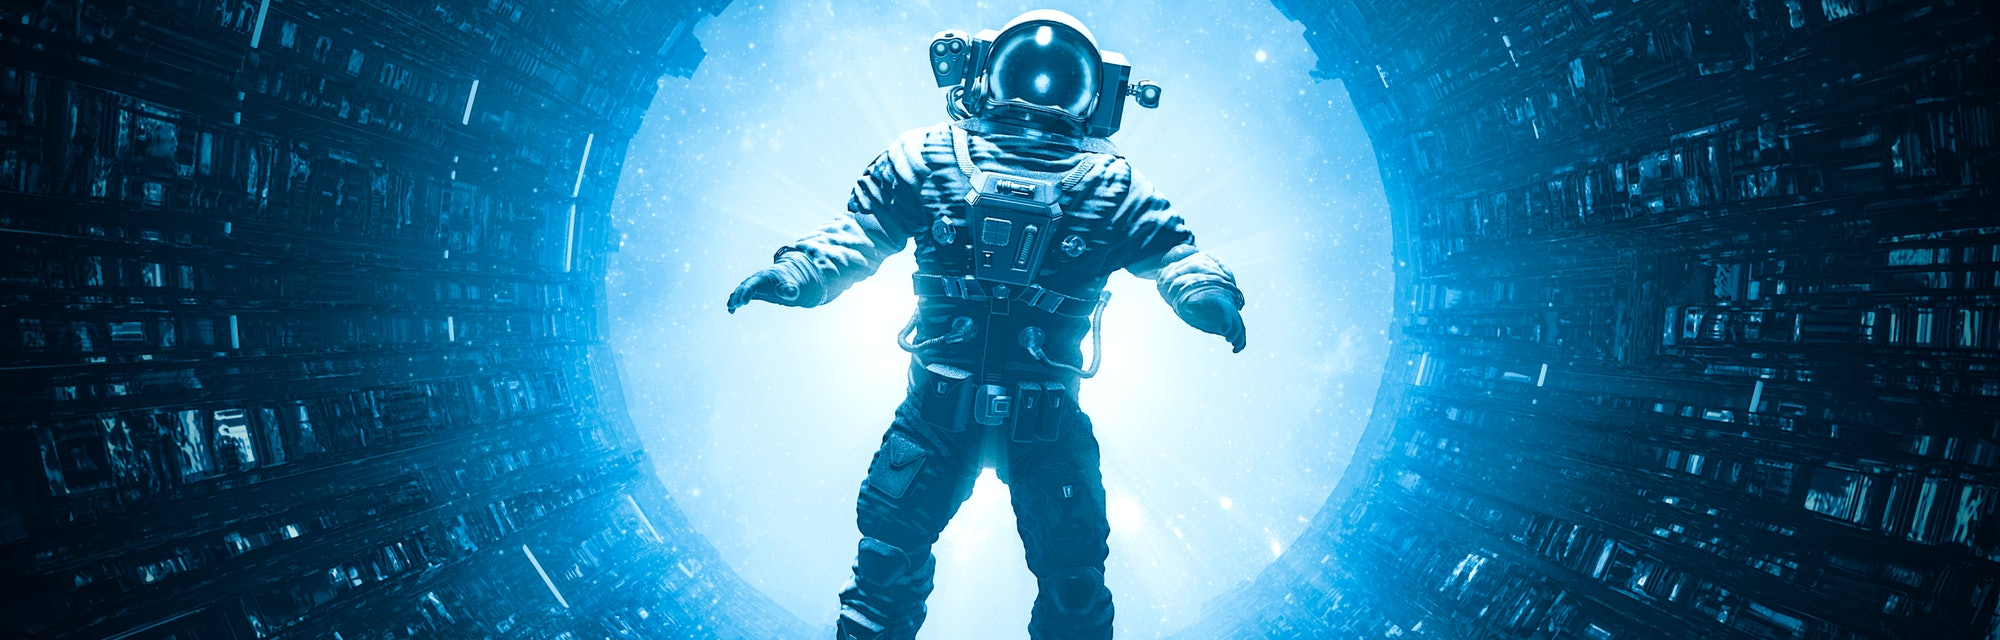 Dangers of space travel / 3D illustration of astronaut floating in dark mysterious space station cor...